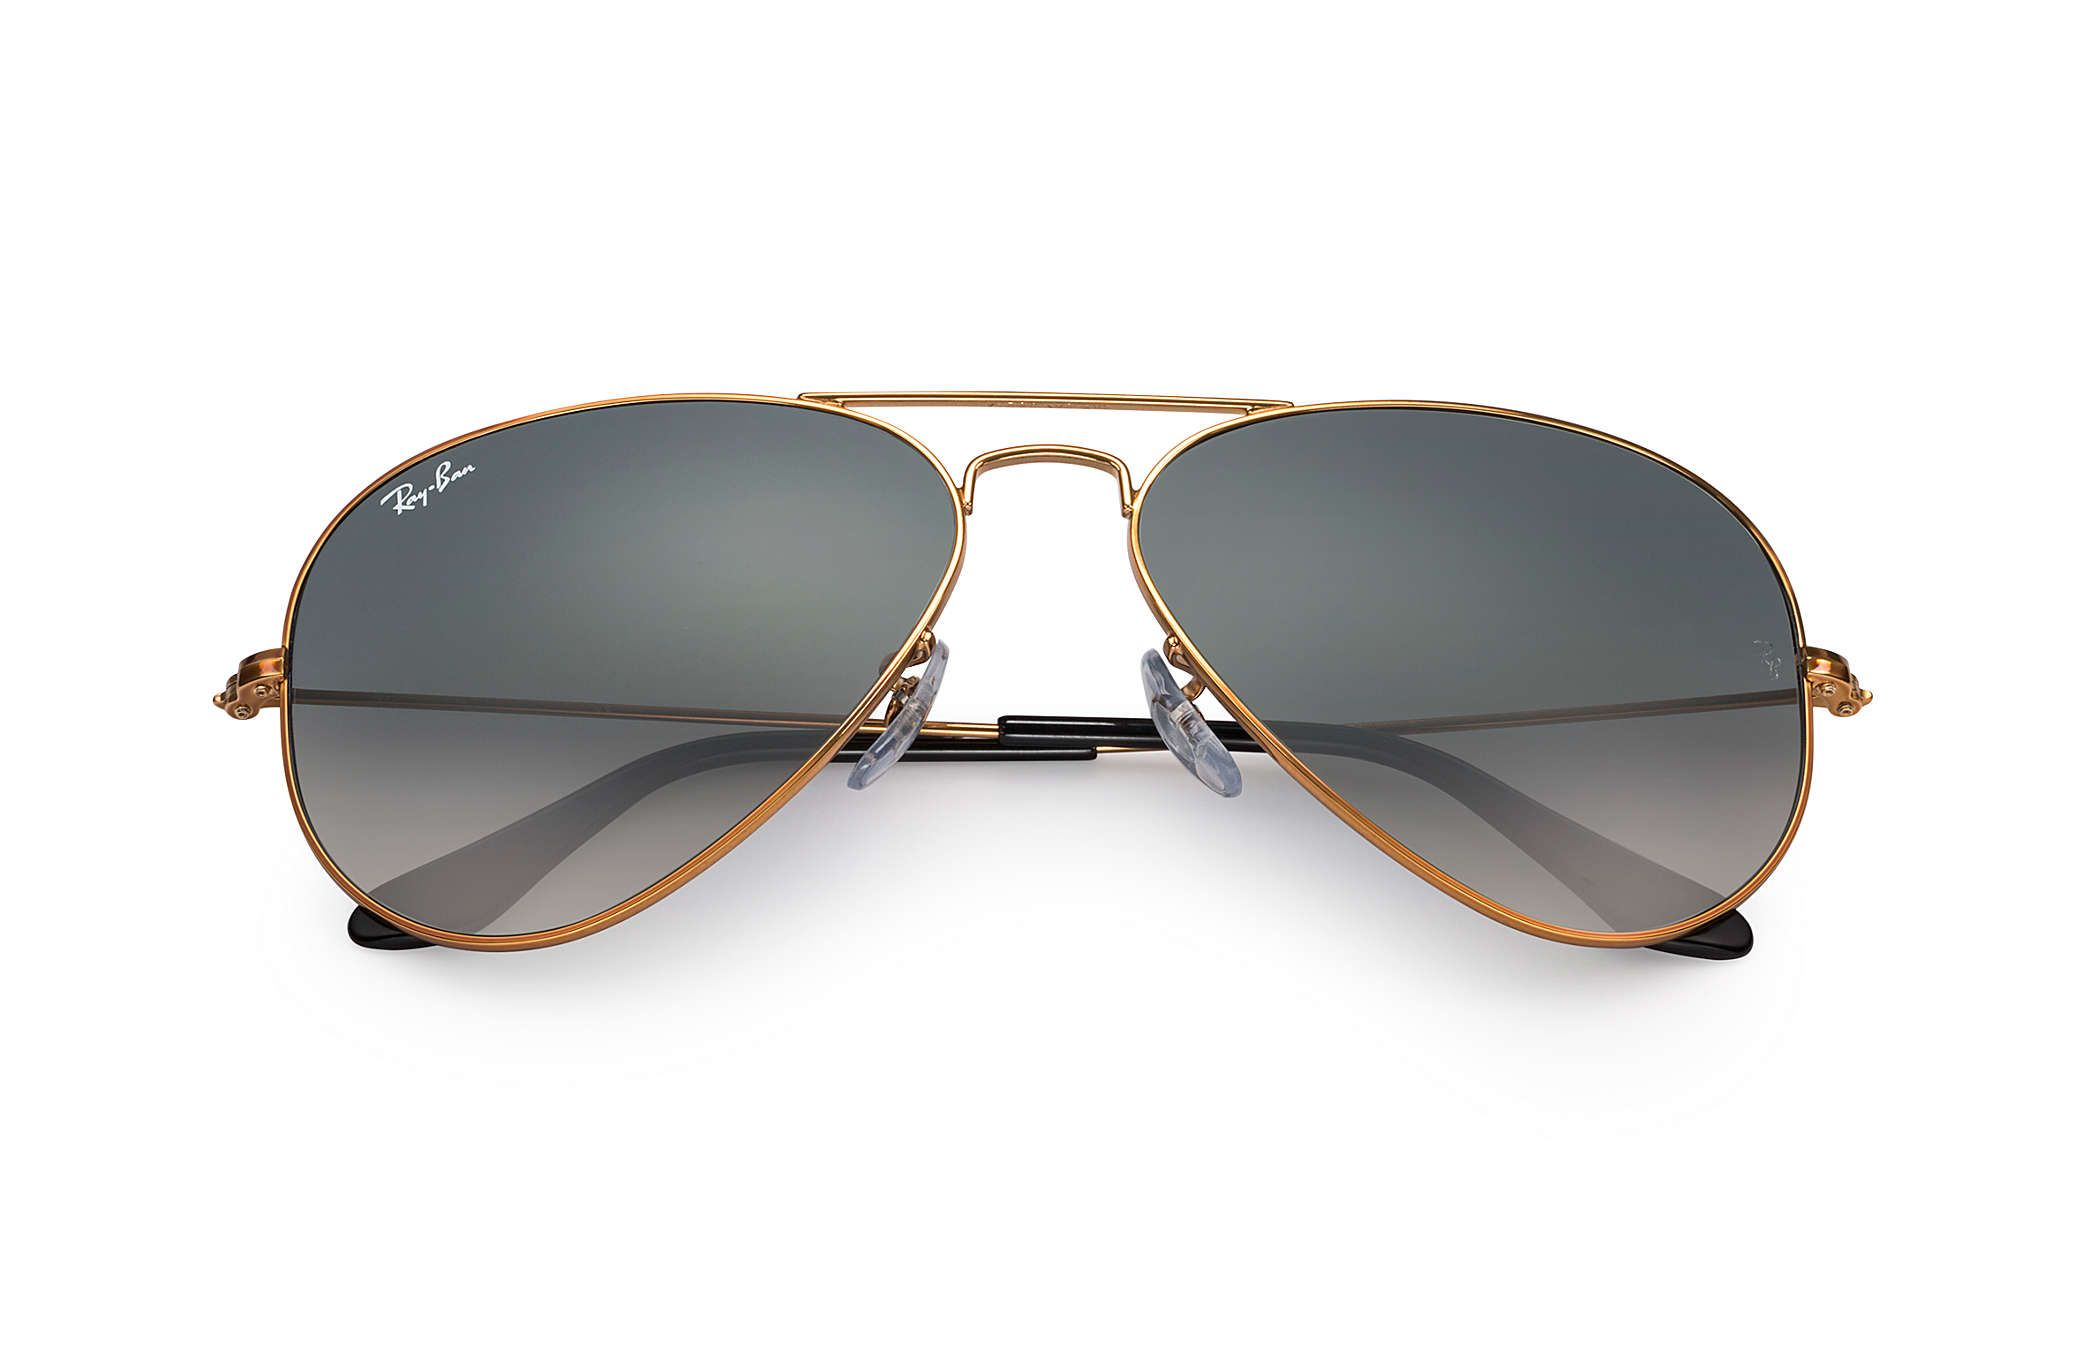 f047a31e6e Ray-Ban 0RB3025-AVIATOR GRADIENT Bronze-Copper SUN Mens Sunglasses